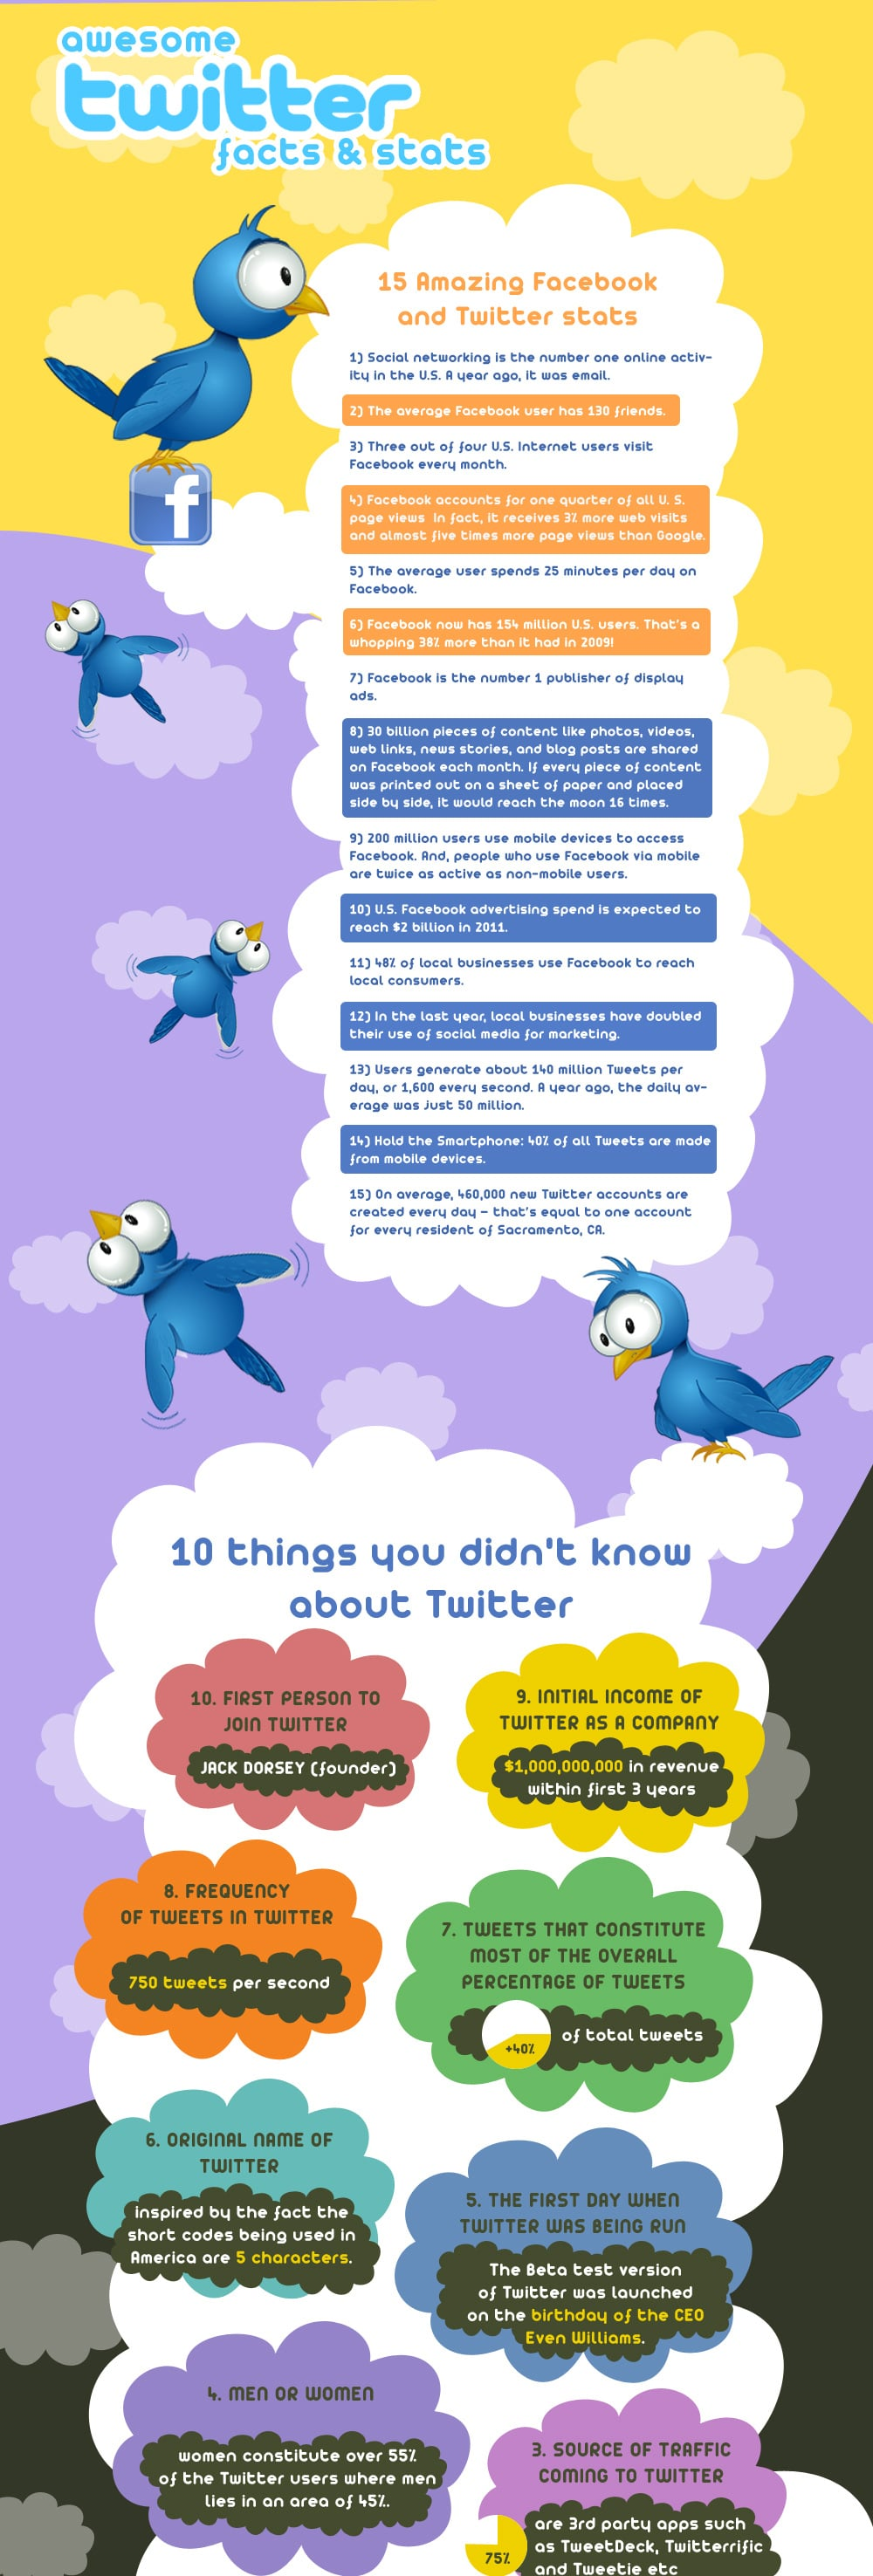 42 Fresh Twitter Facebook Facts